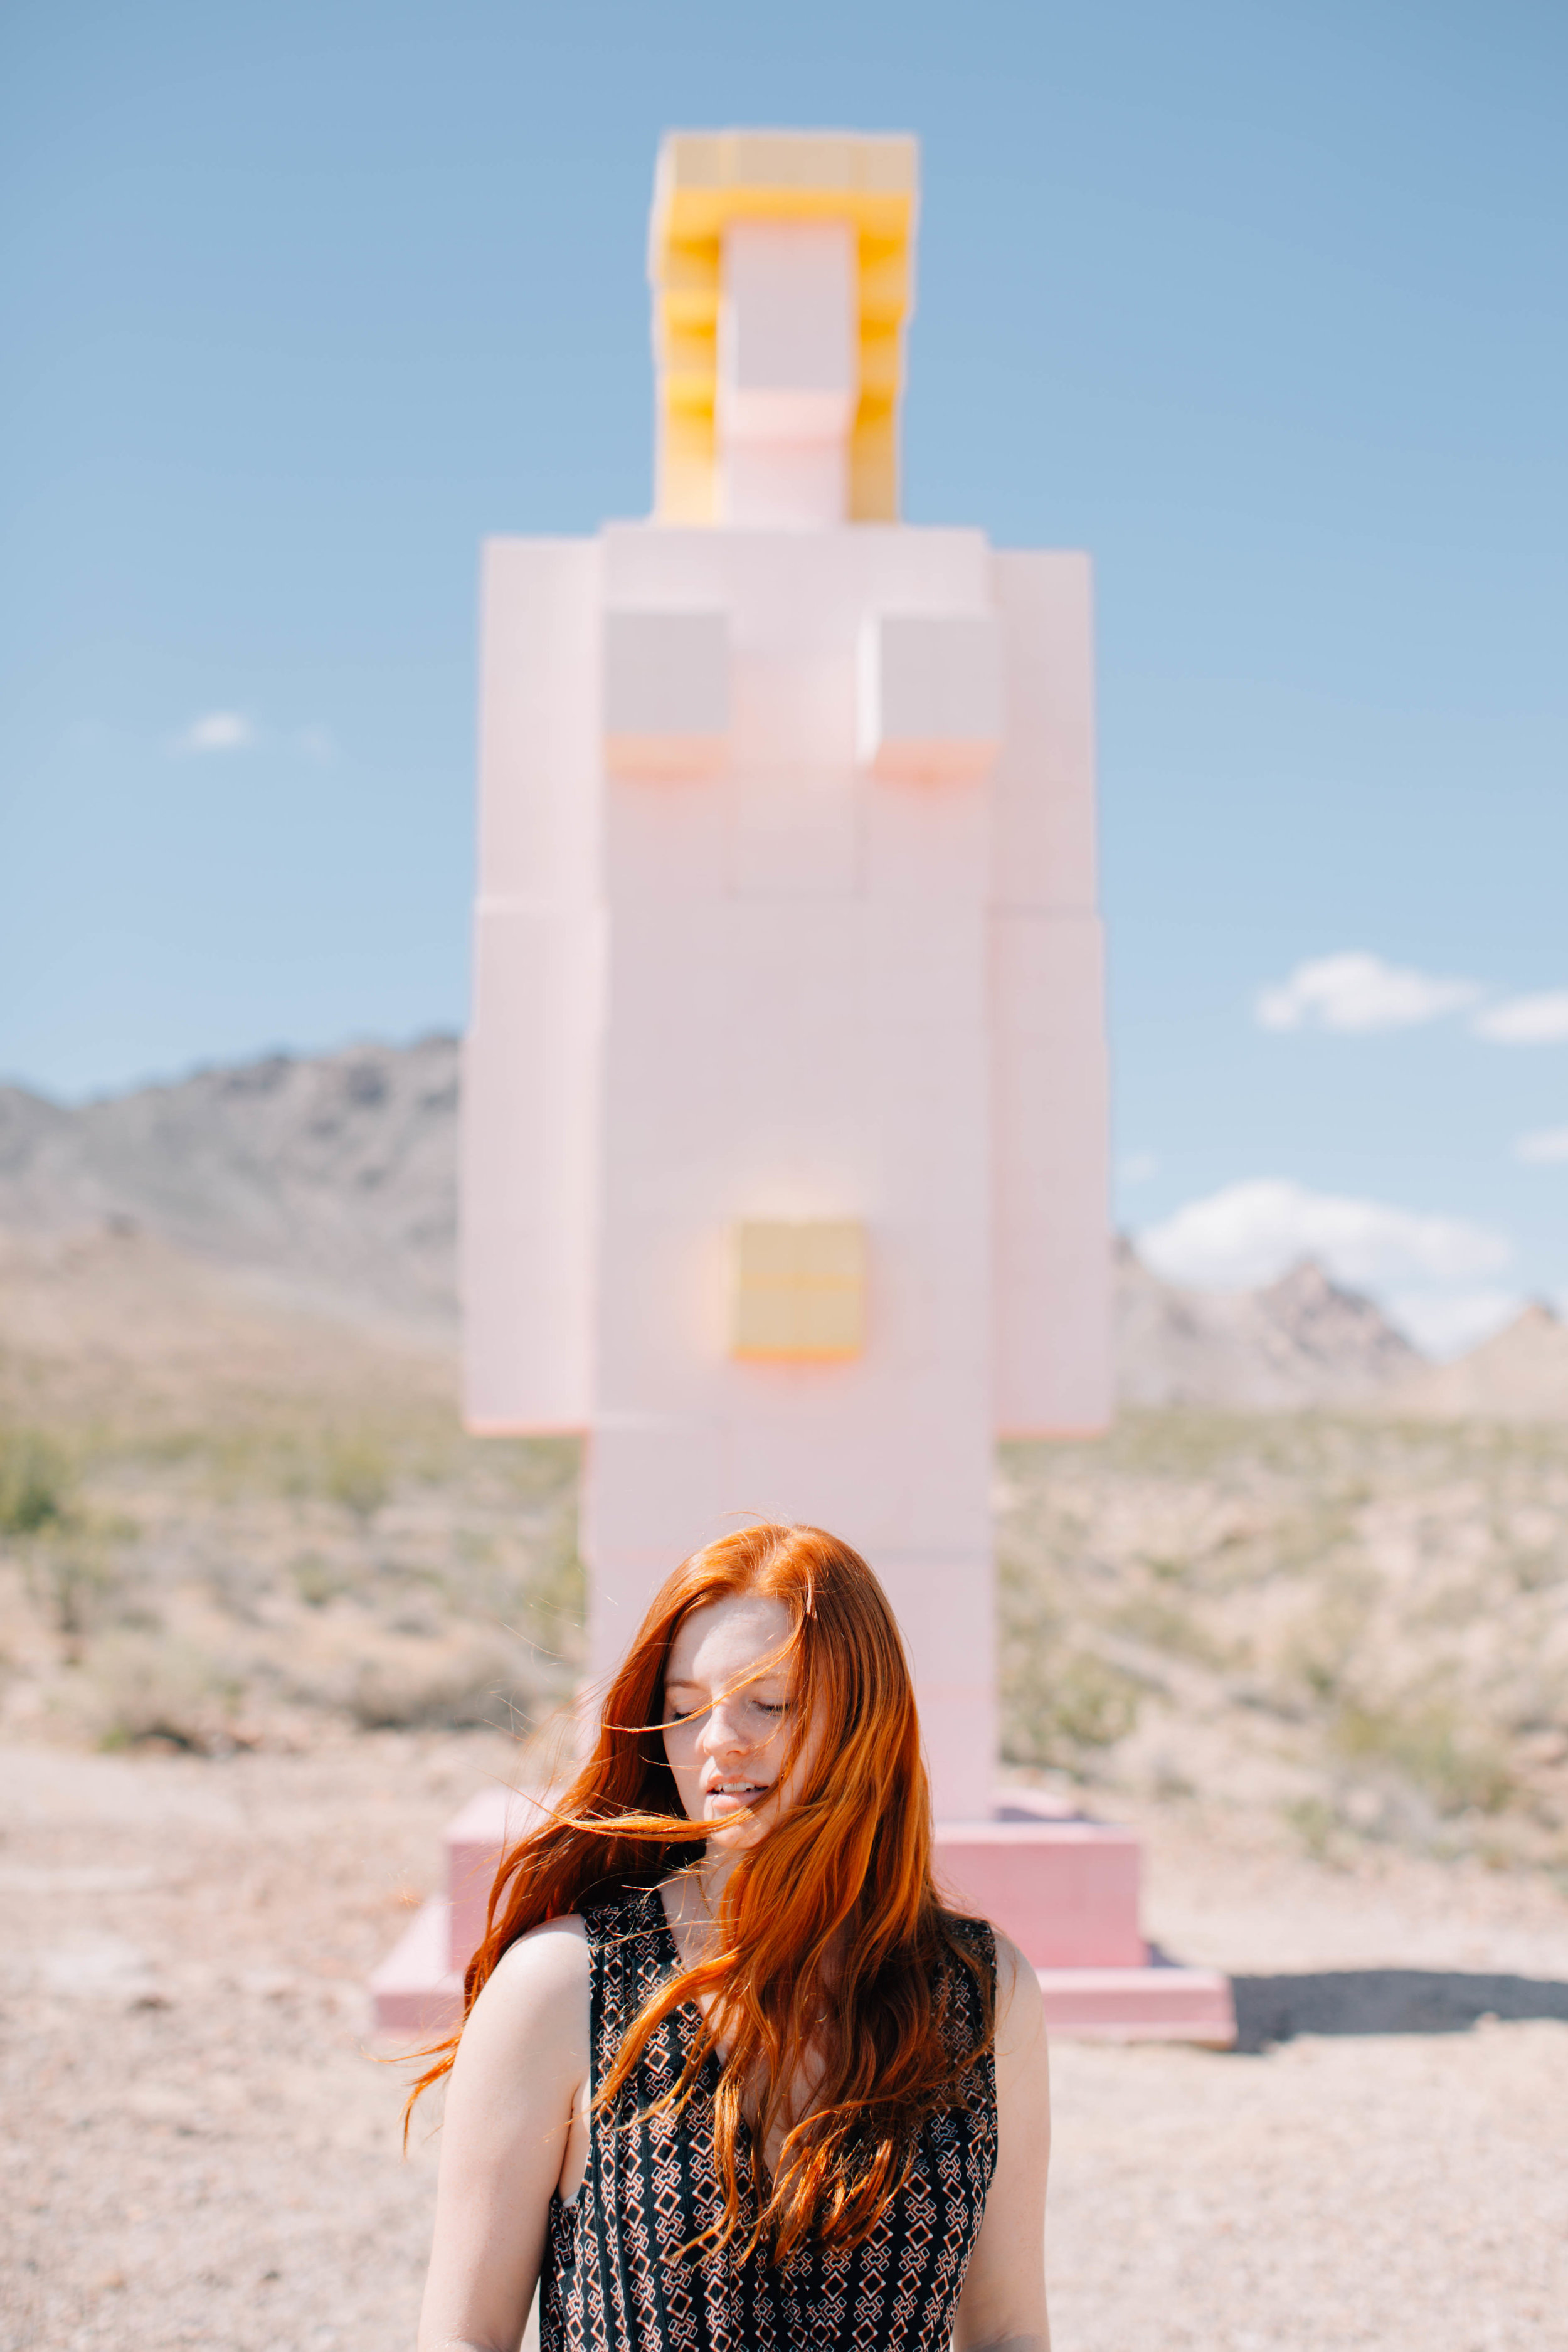 Another strange part of the ghost town - this giant naked lego lady.